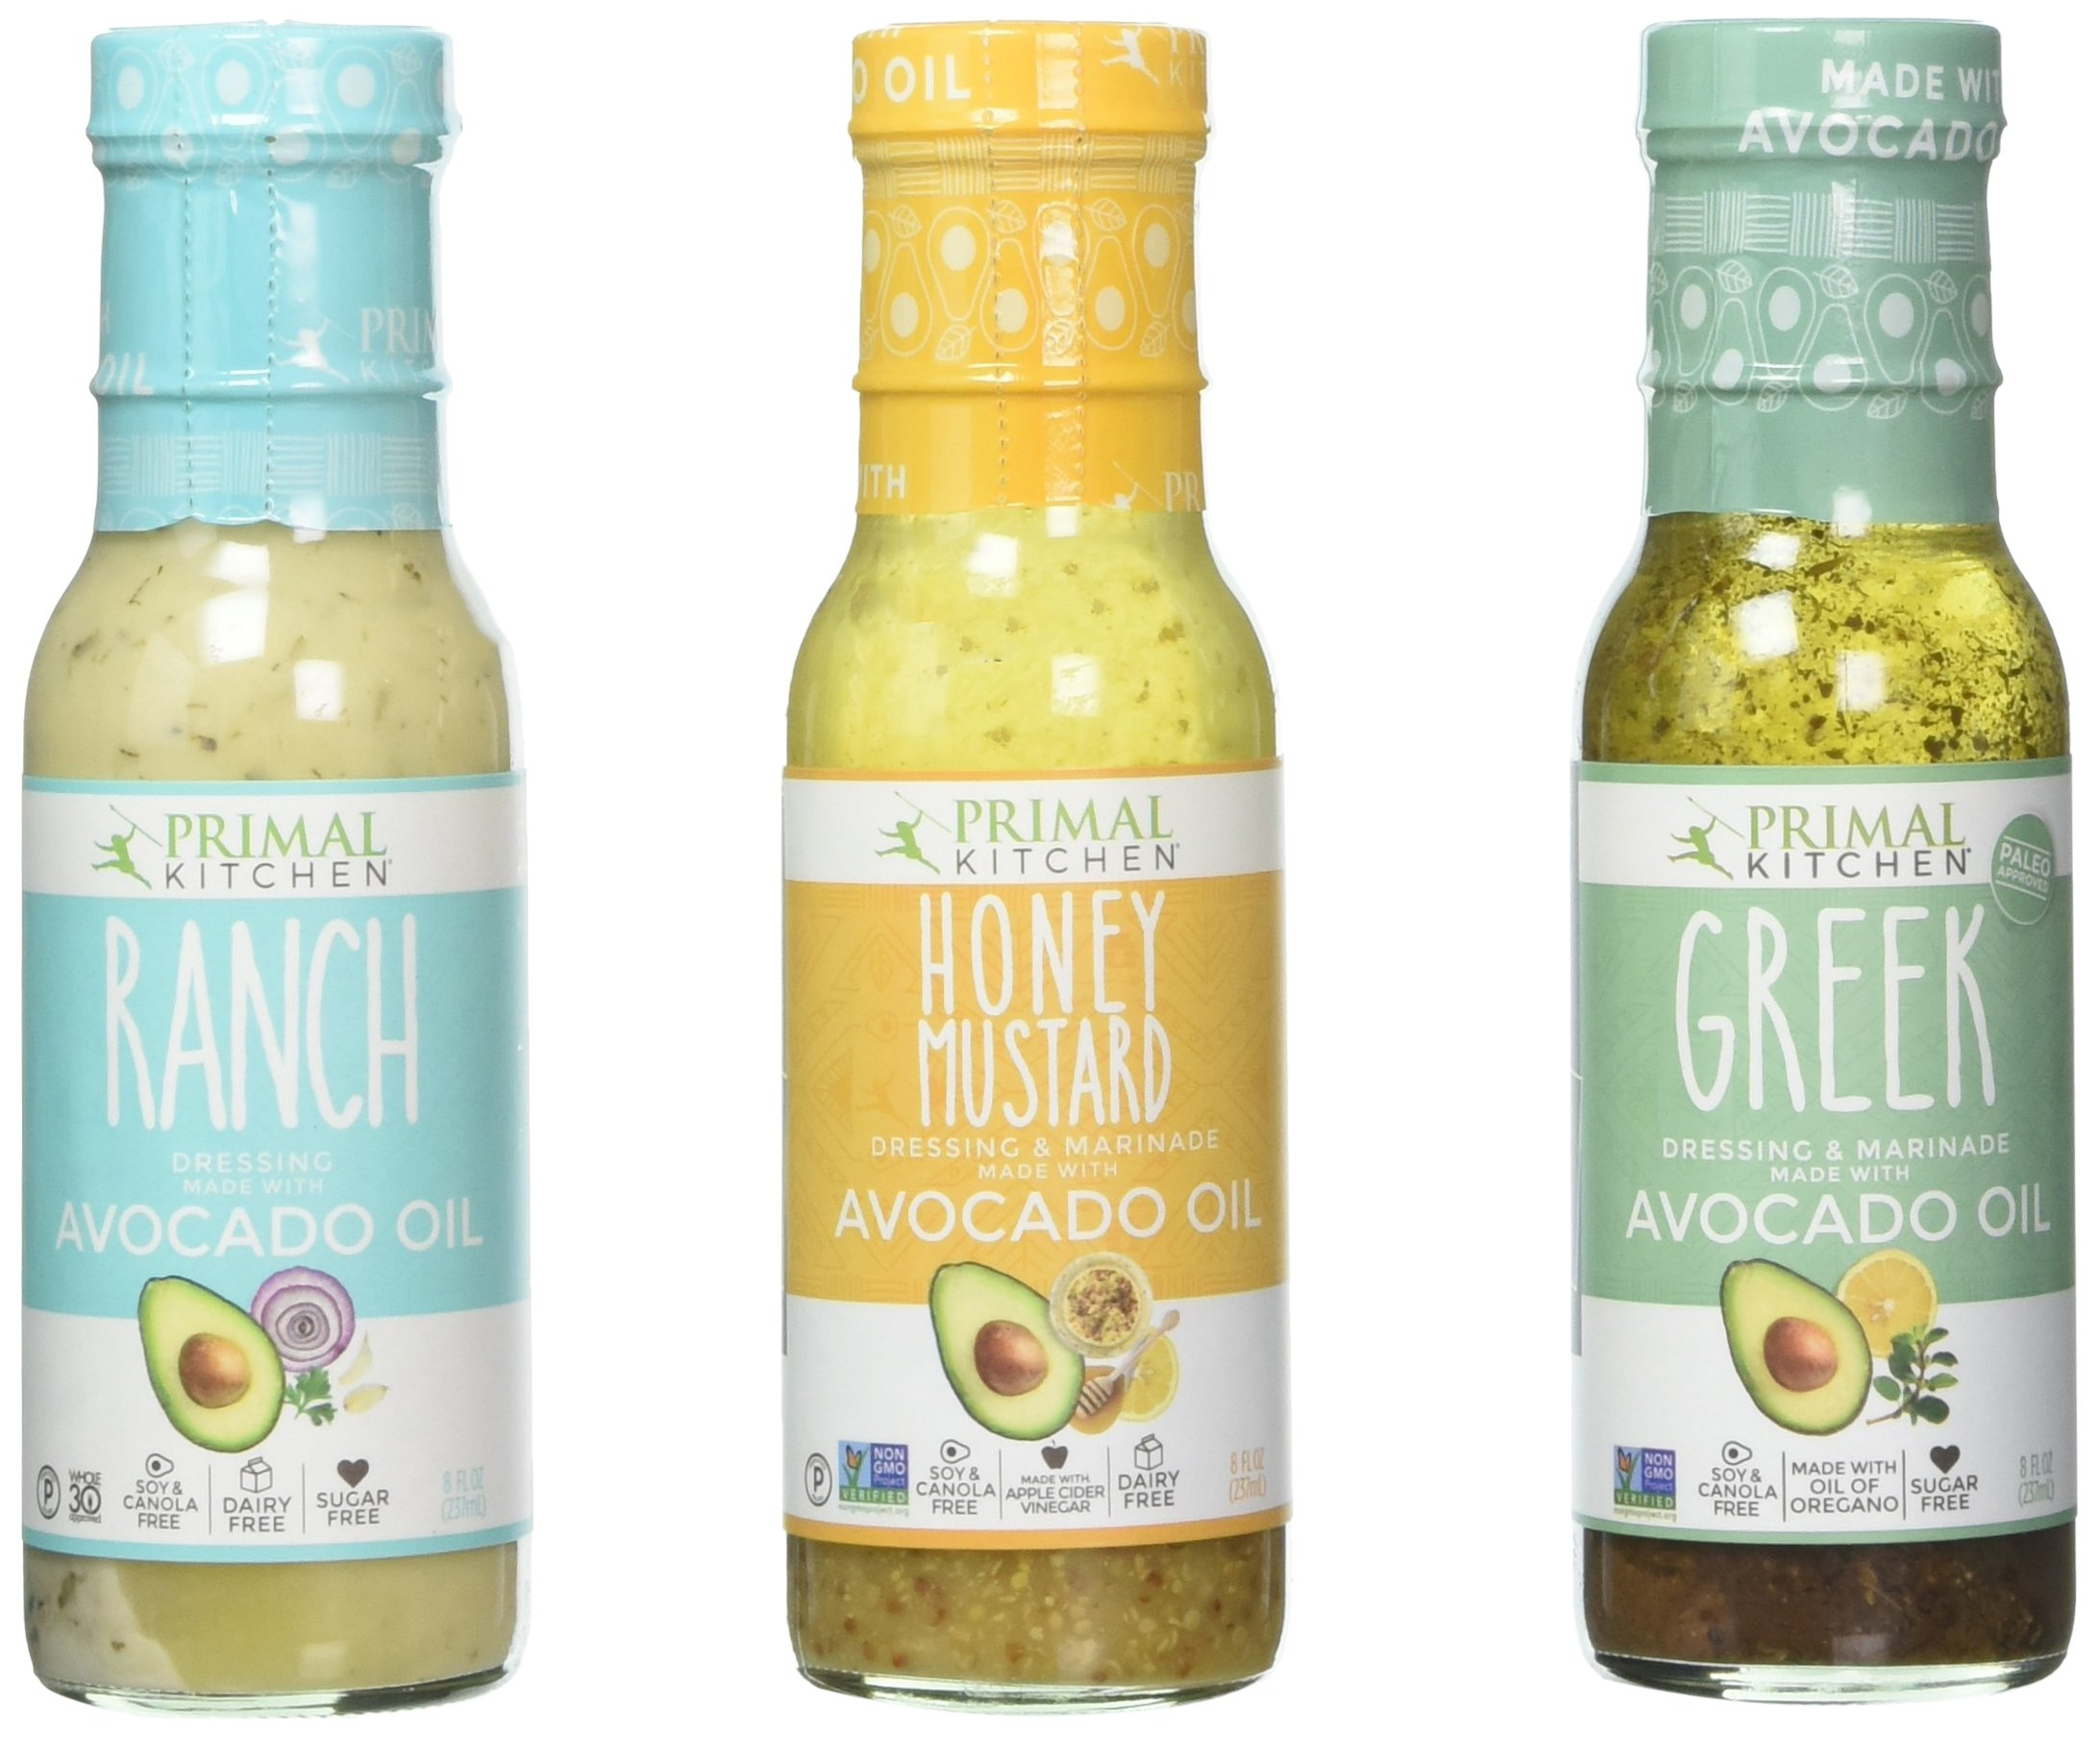 Primal Kitchen Avocado Oil 3 Pack Dressing and Marinade: Ranch, Greek, and Honey Mustard (8 oz each)